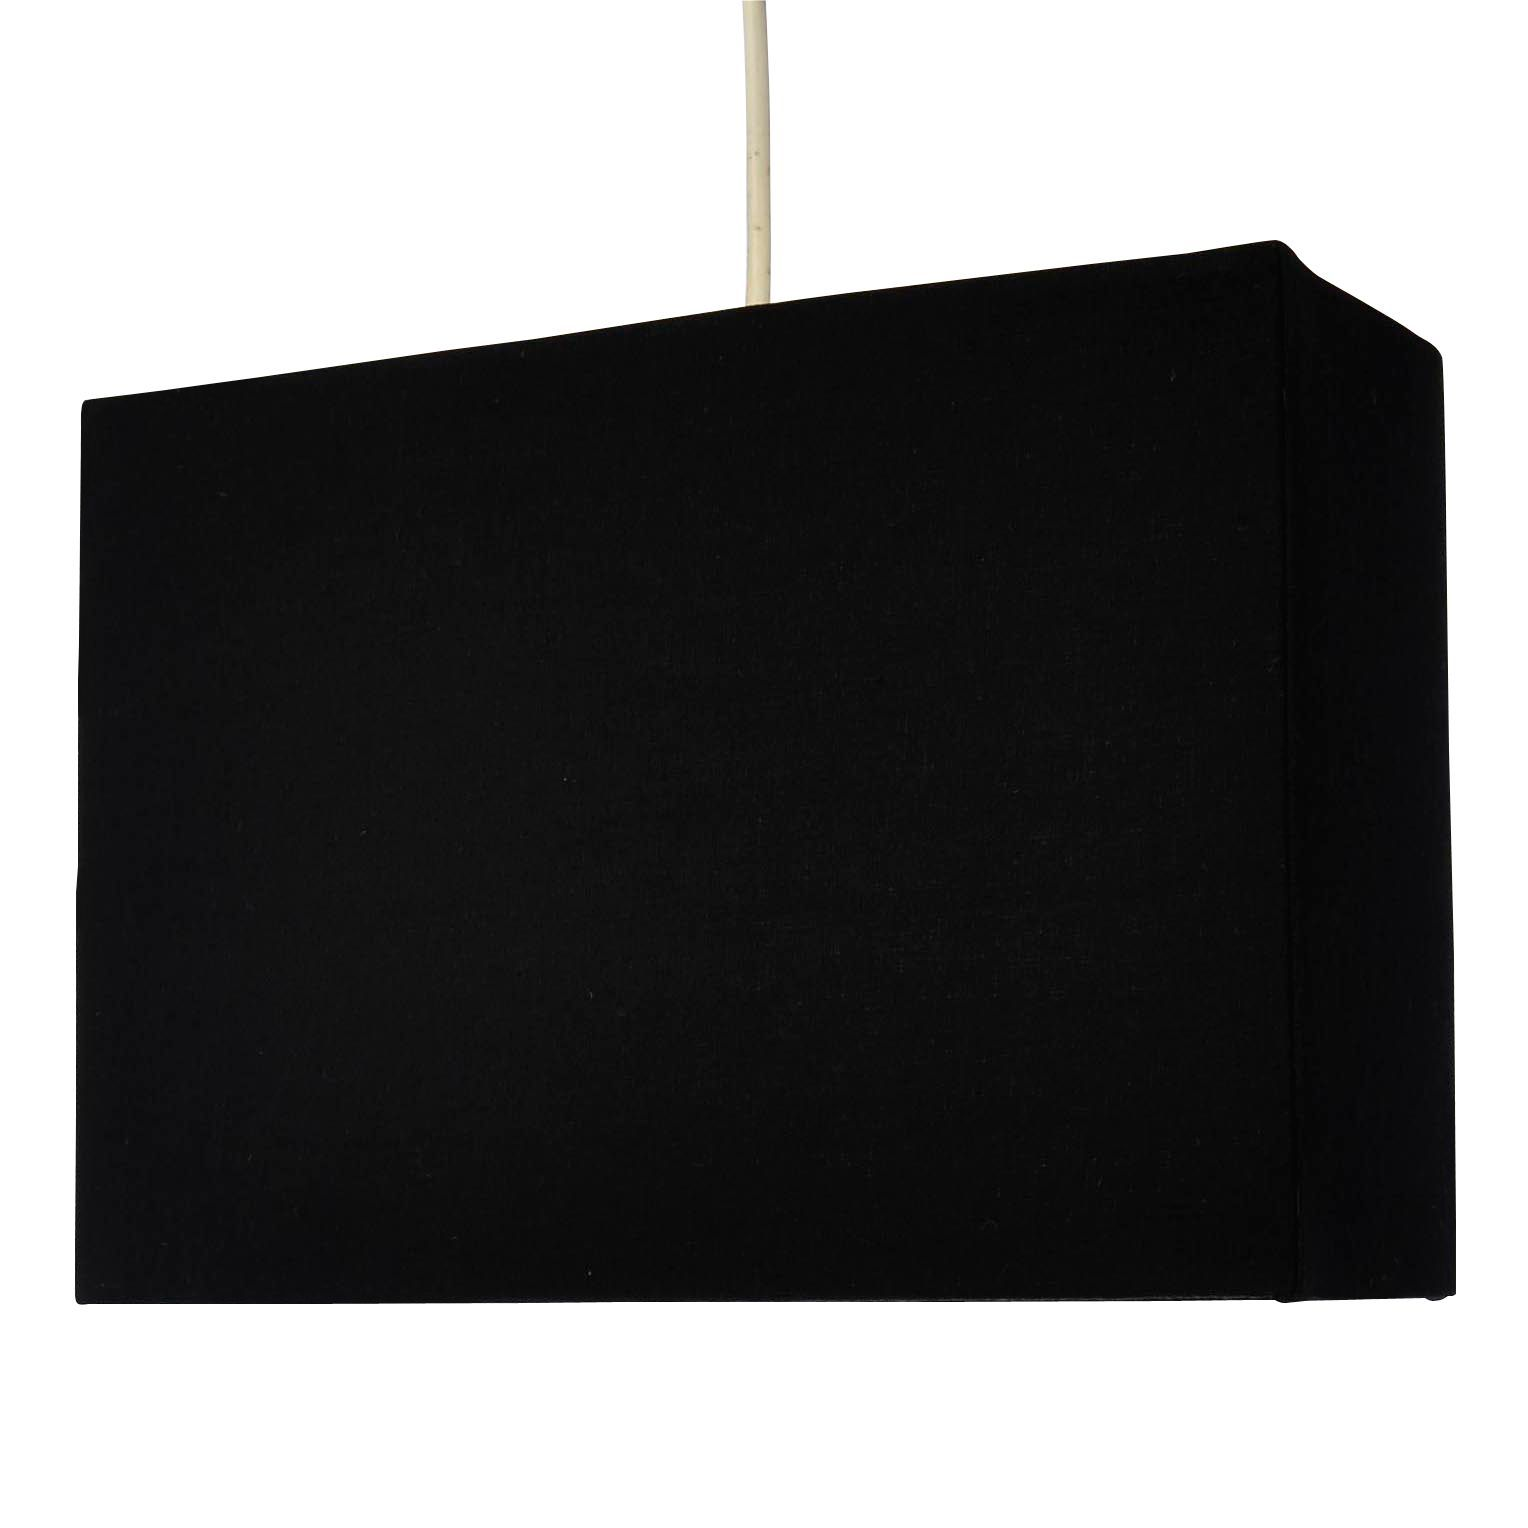 Black Rectangular Lamp Shades: Colours Alban Black Rectangle Lamp Shade,Lighting